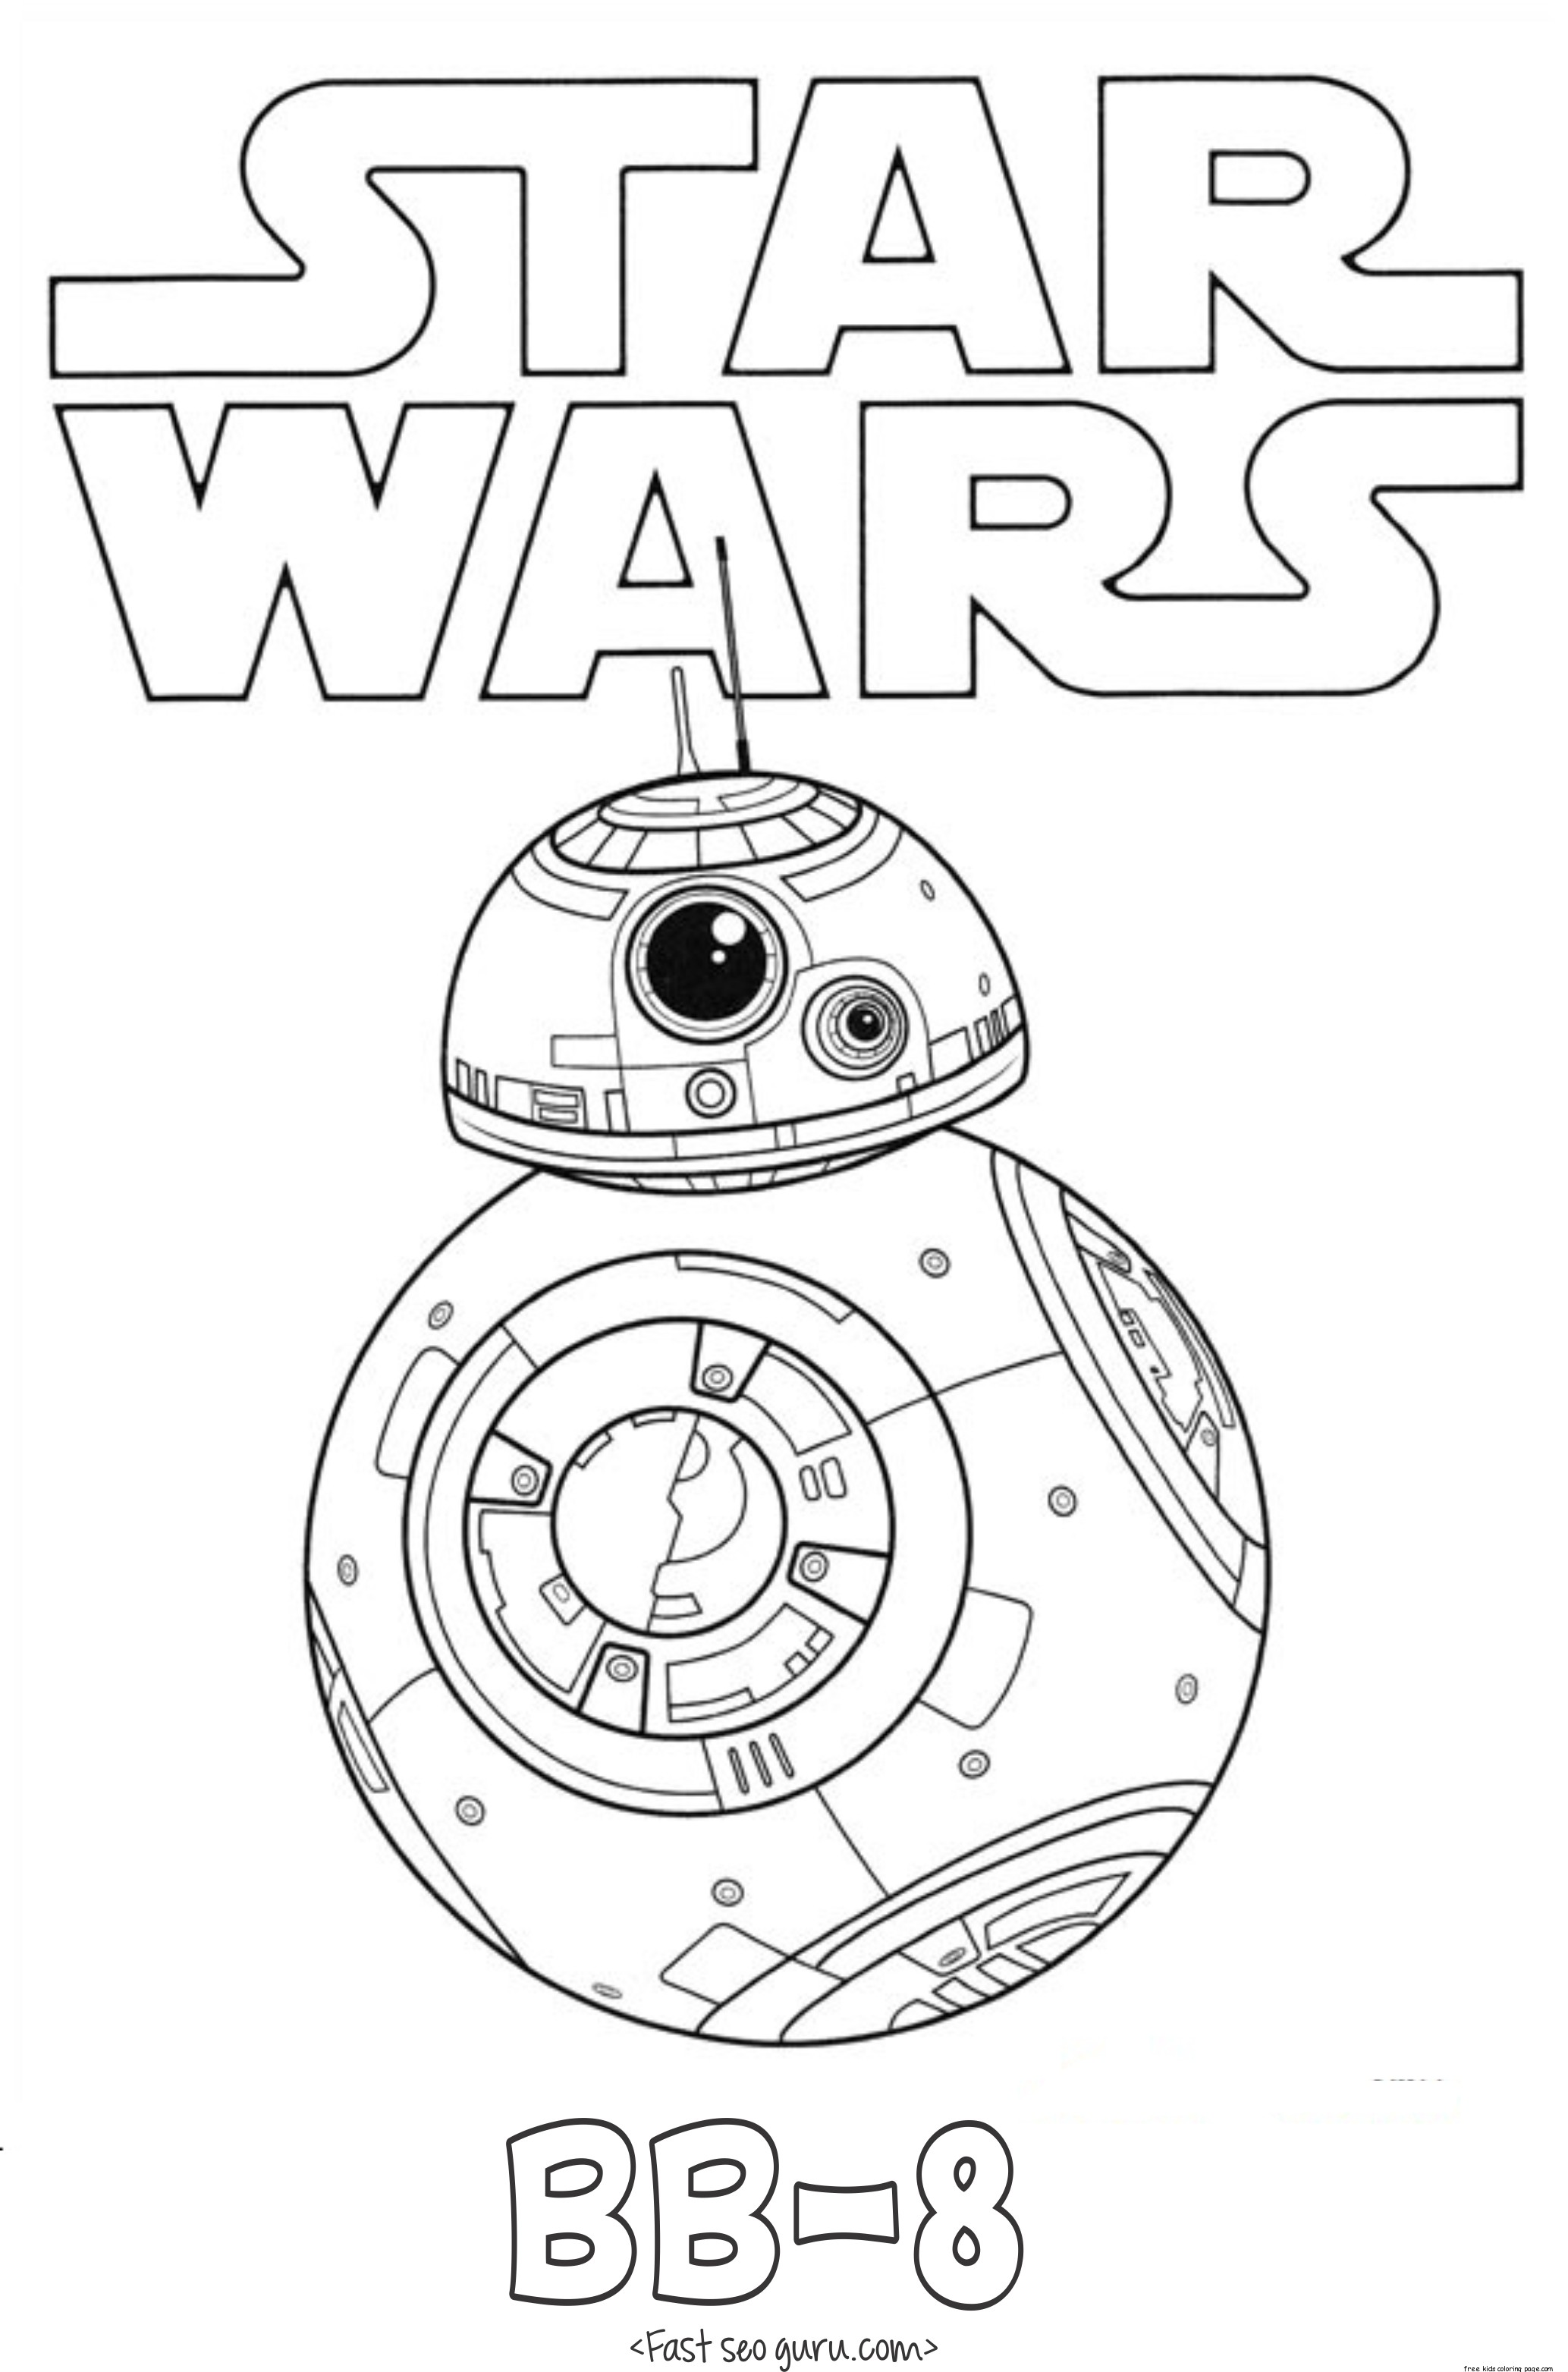 star wars coloring page top 4 ways to get into the star wars craze adult star coloring wars page